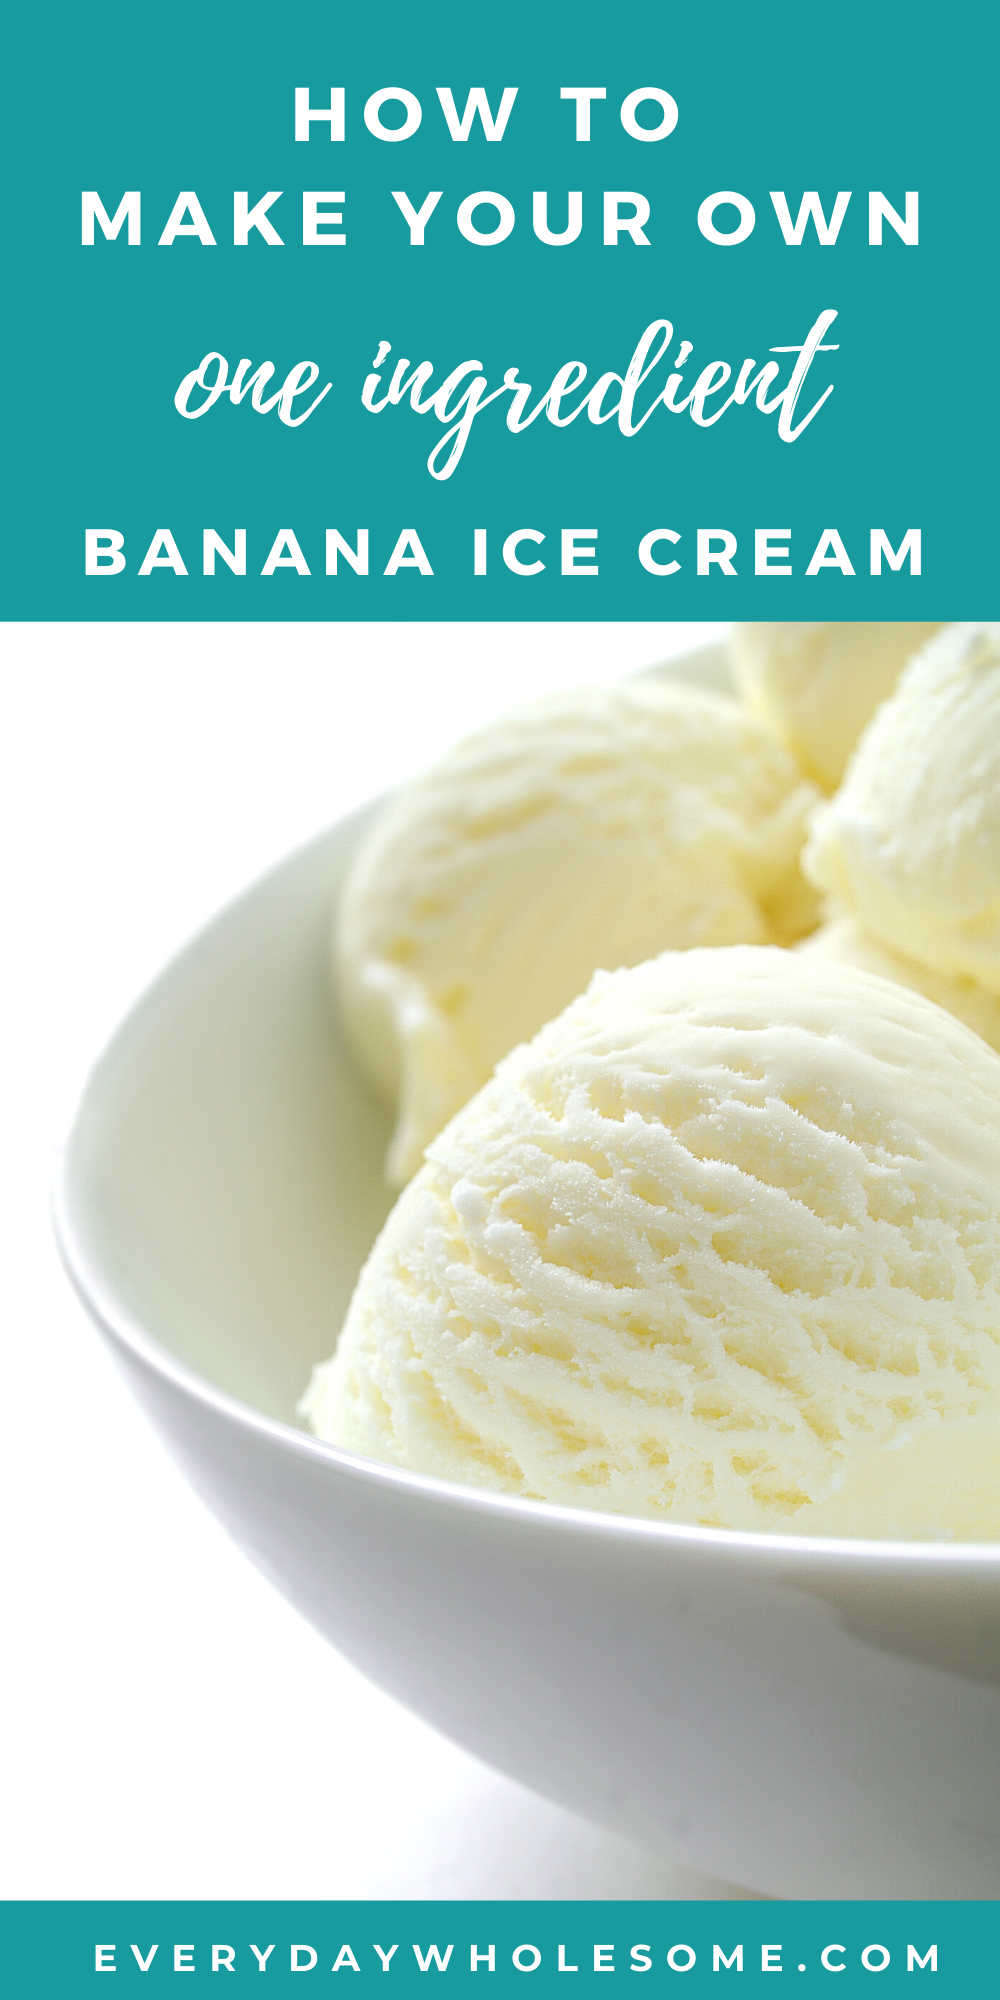 Homemade Banana Ice Cream Recipe With One Ingredient Vegan Easy Healthy Simple No Added In 2020 Banana Ice Cream Healthy Banana Ice Cream Recipe Ice Cream Recipes